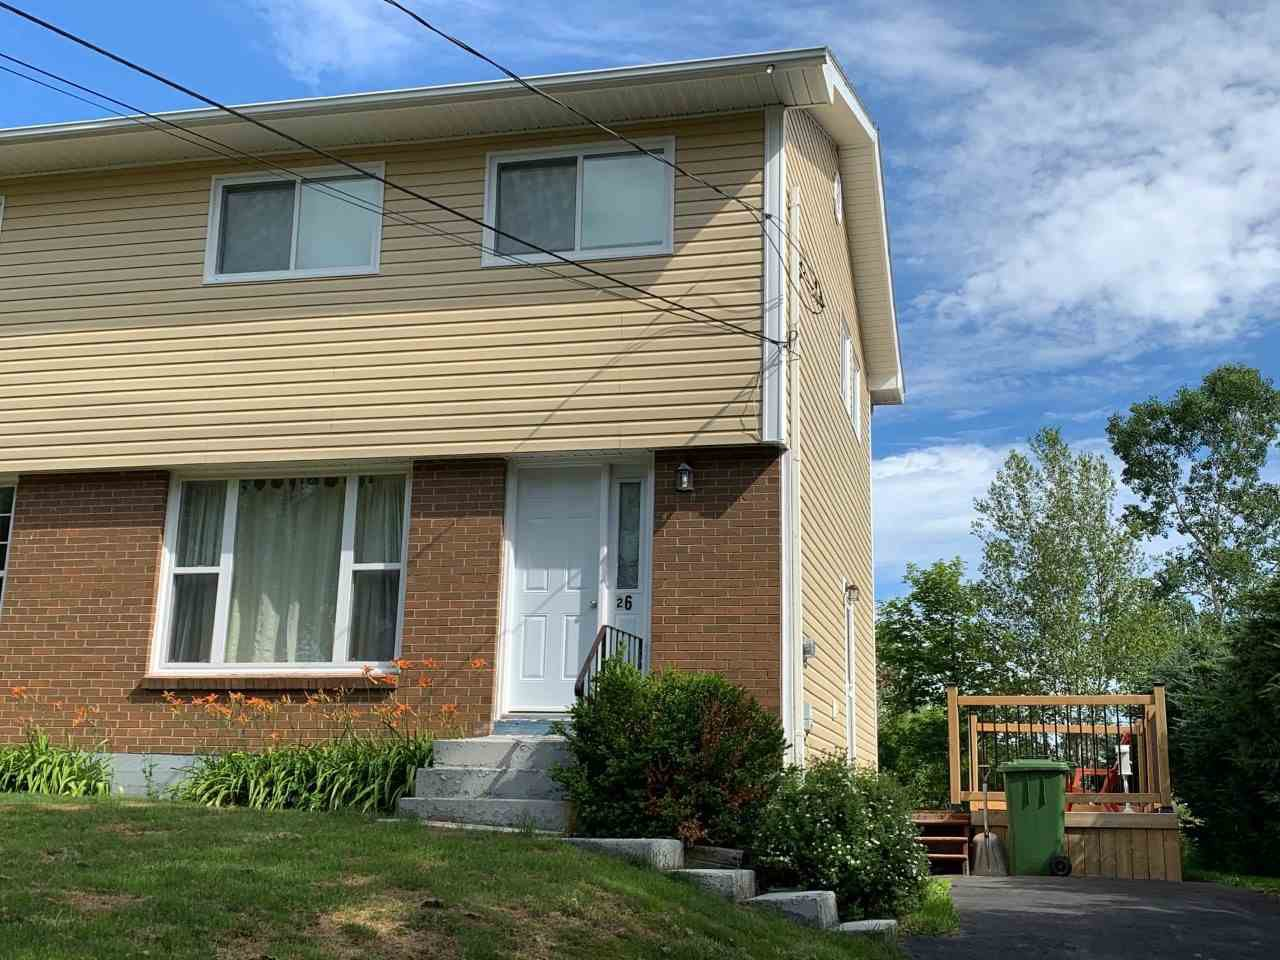 Main Photo: 26 Weir Avenue in Stellarton: 106-New Glasgow, Stellarton Residential for sale (Northern Region)  : MLS®# 202013357